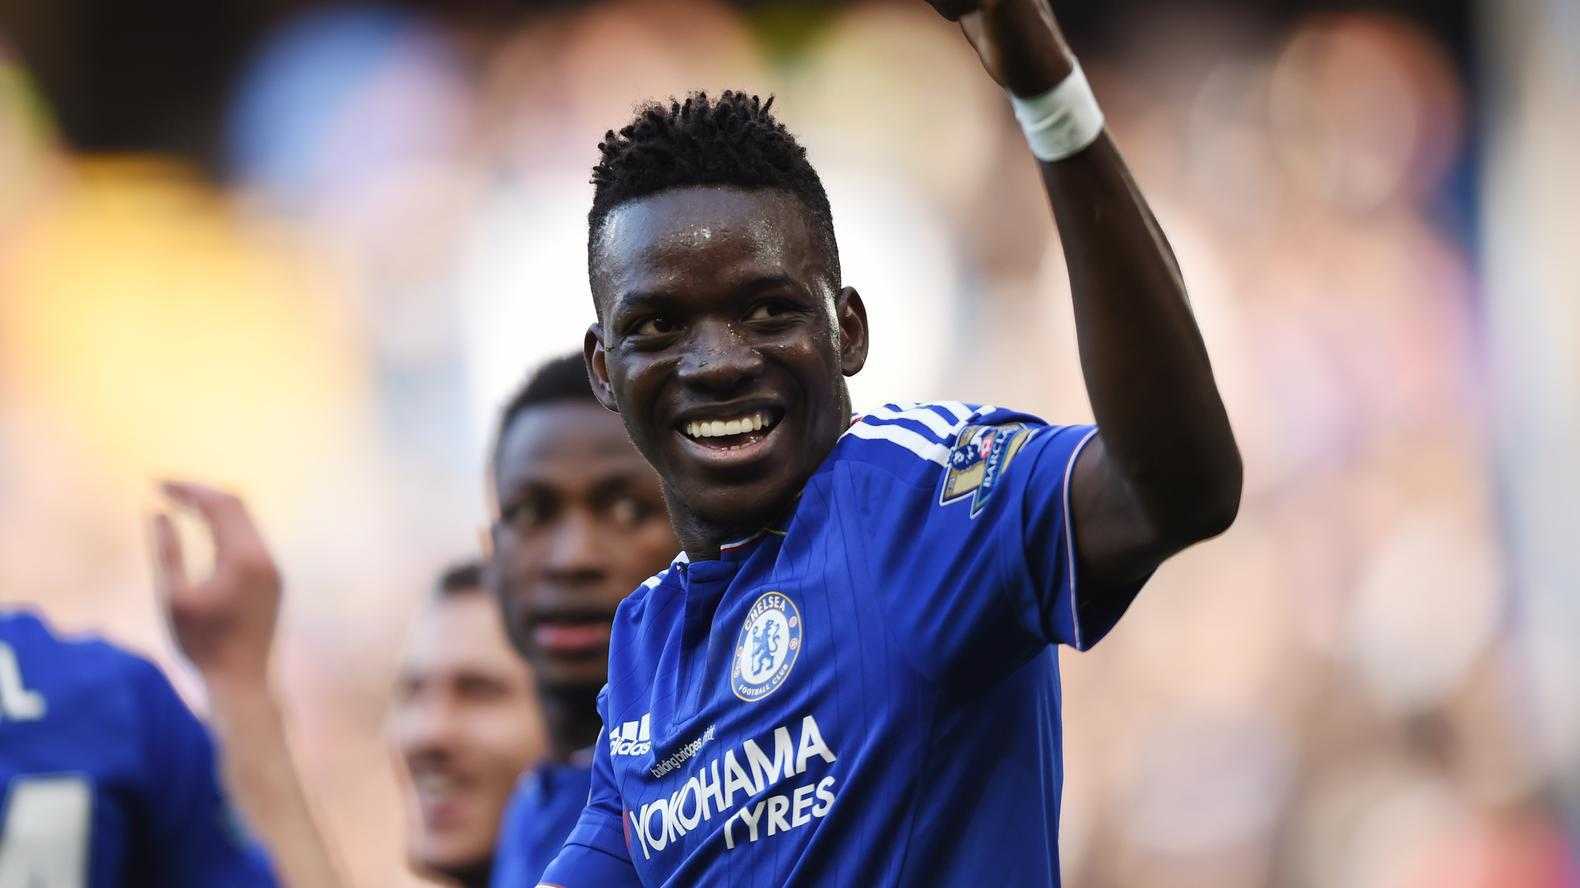 """Football Soccer - Chelsea v Stoke City - Barclays Premier League - Stamford Bridge - 5/3/16 Chelsea's Bertrand Traore celebrates scoring their first goal Action Images via Reuters / Tony O'Brien Livepic EDITORIAL USE ONLY. No use with unauthorized audio, video, data, fixture lists, club/league logos or """"live"""" services. Online in-match use limited to 45 images, no video emulation. No use in betting, games or single club/league/player publications.  Please contact your account representative for further details."""